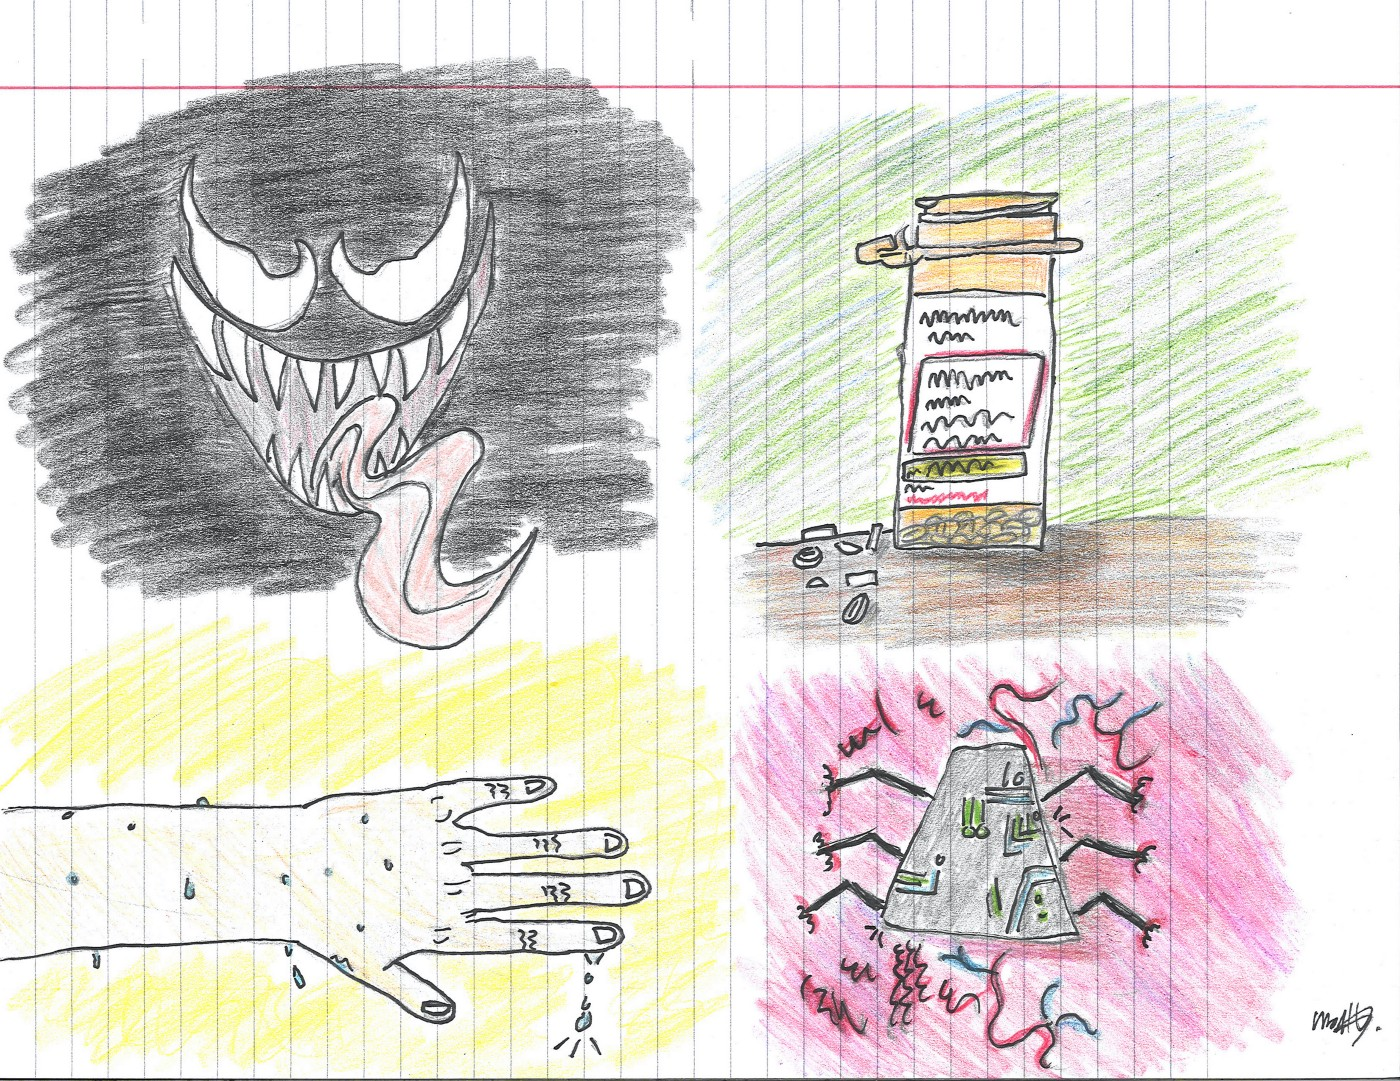 """""""Venom""""'s face (top left), a pill bottle (top right), a sweating hand (bottom left), and """"STEM"""" atop flesh (bottom right)."""